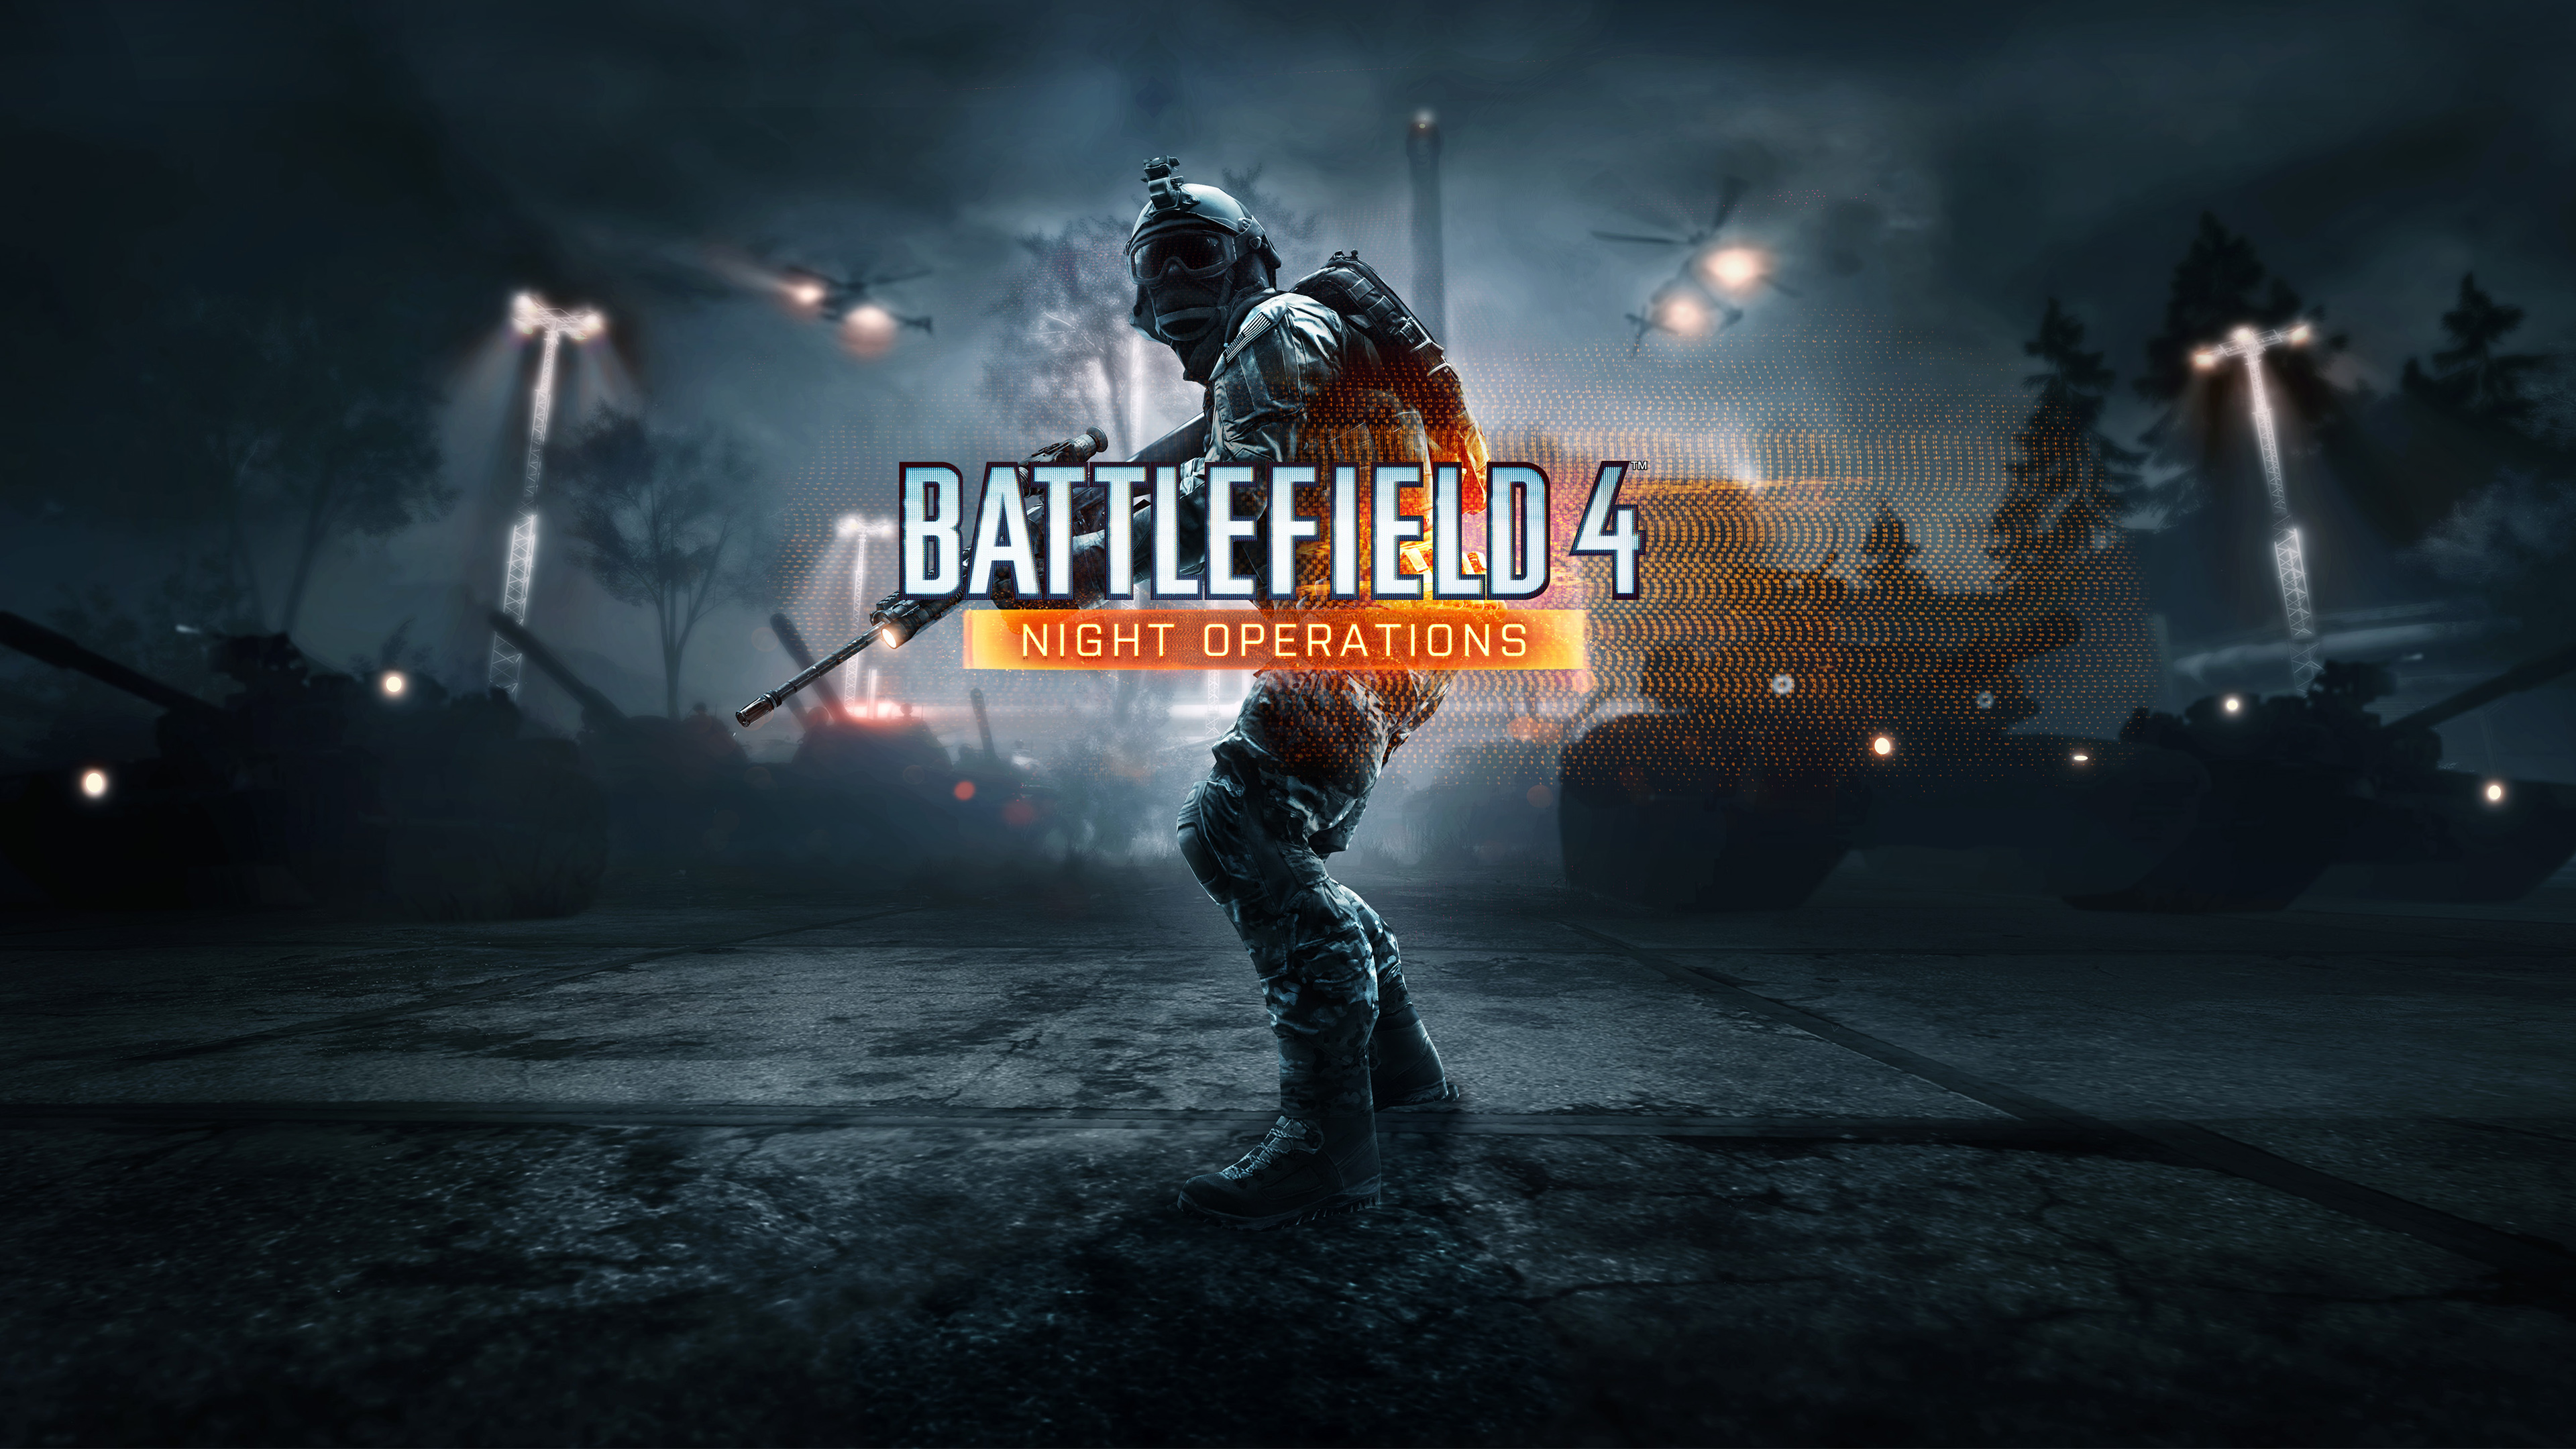 battlefield 4 game, hd games, 4k wallpapers, images, backgrounds